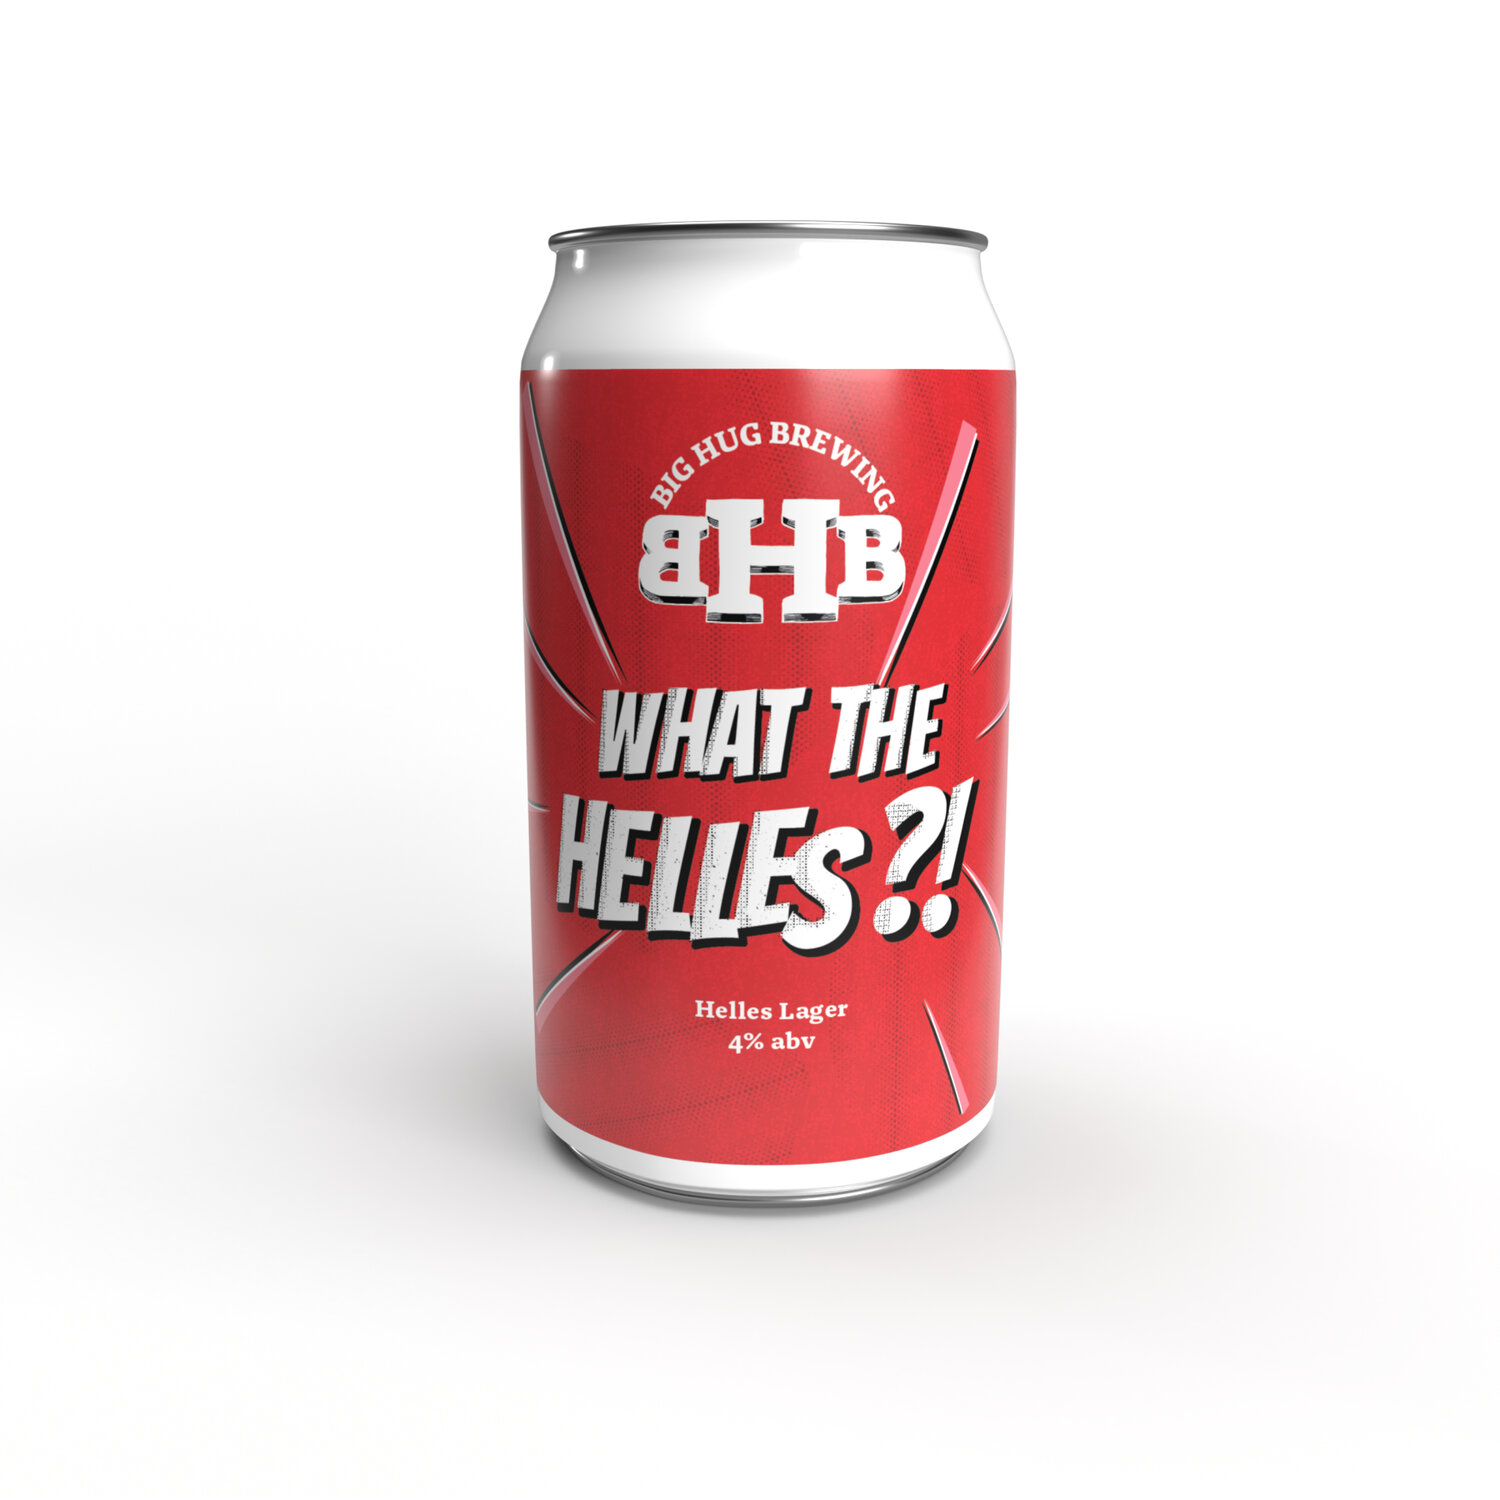 WHAT THE HELLES CAN